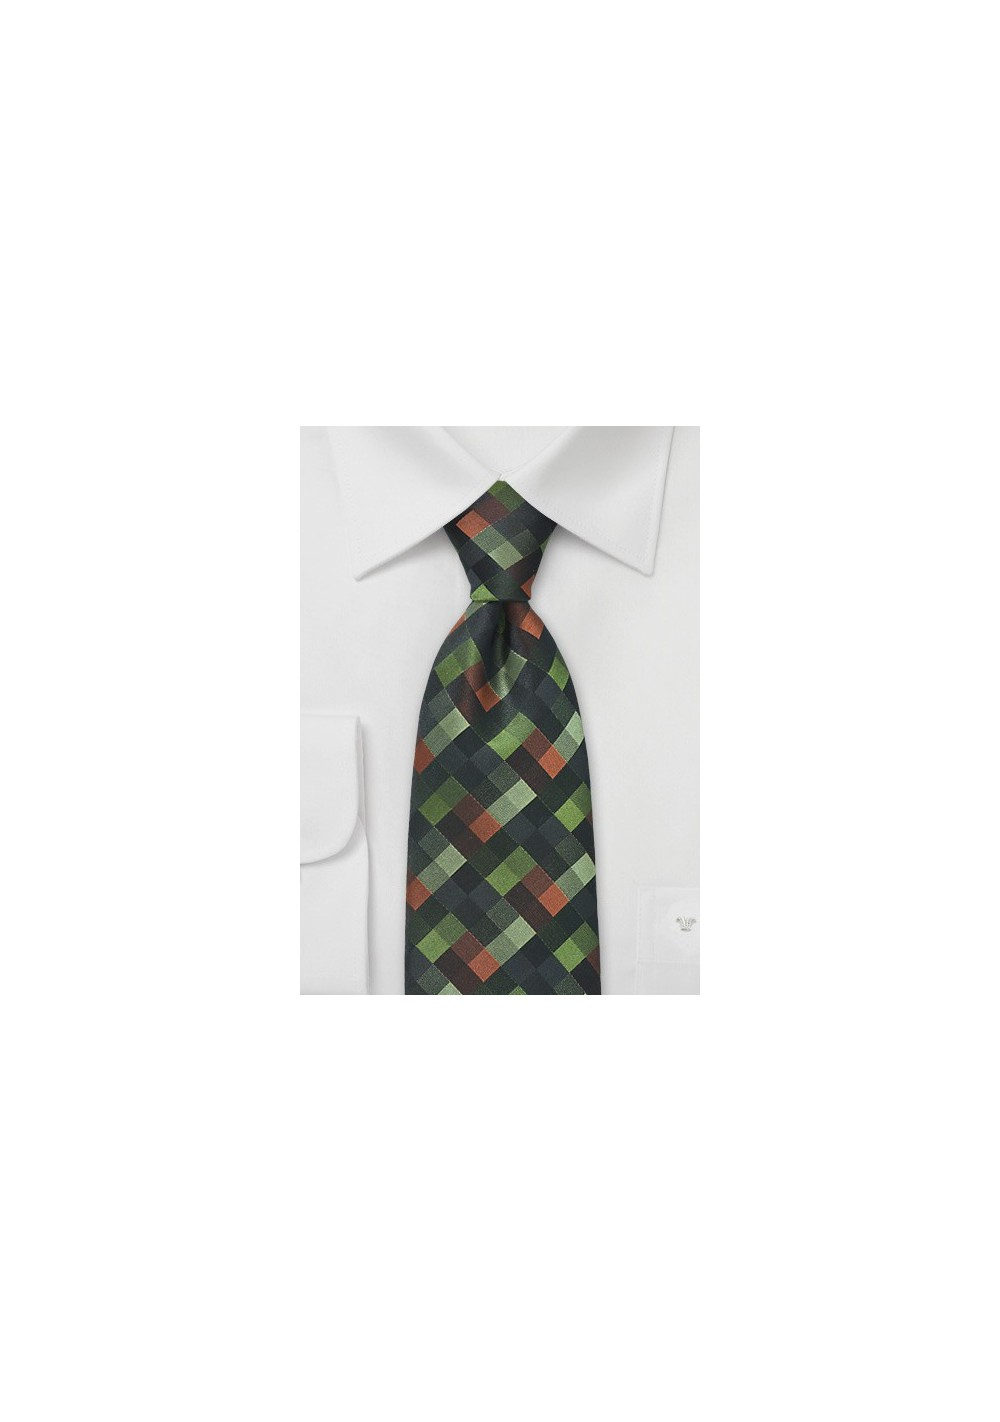 Patchwork Tie in a Palette of Autumn Greens